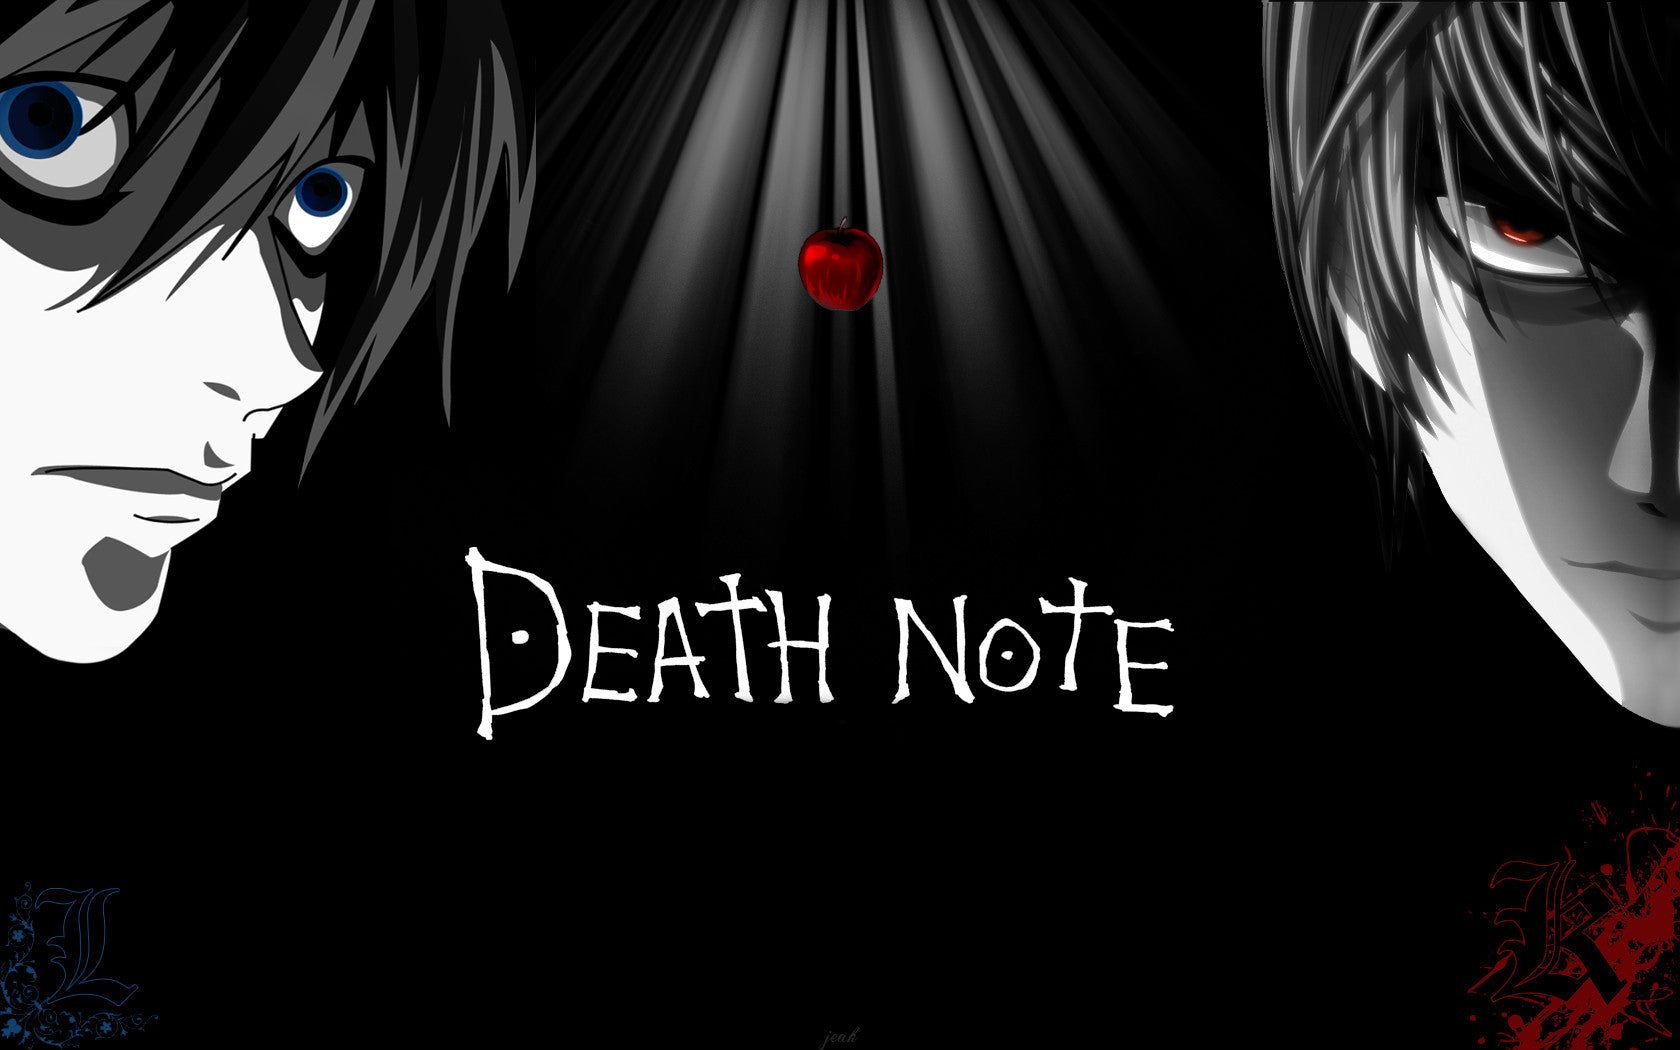 Death Note for Dummies (Upcoming Netflix Show)